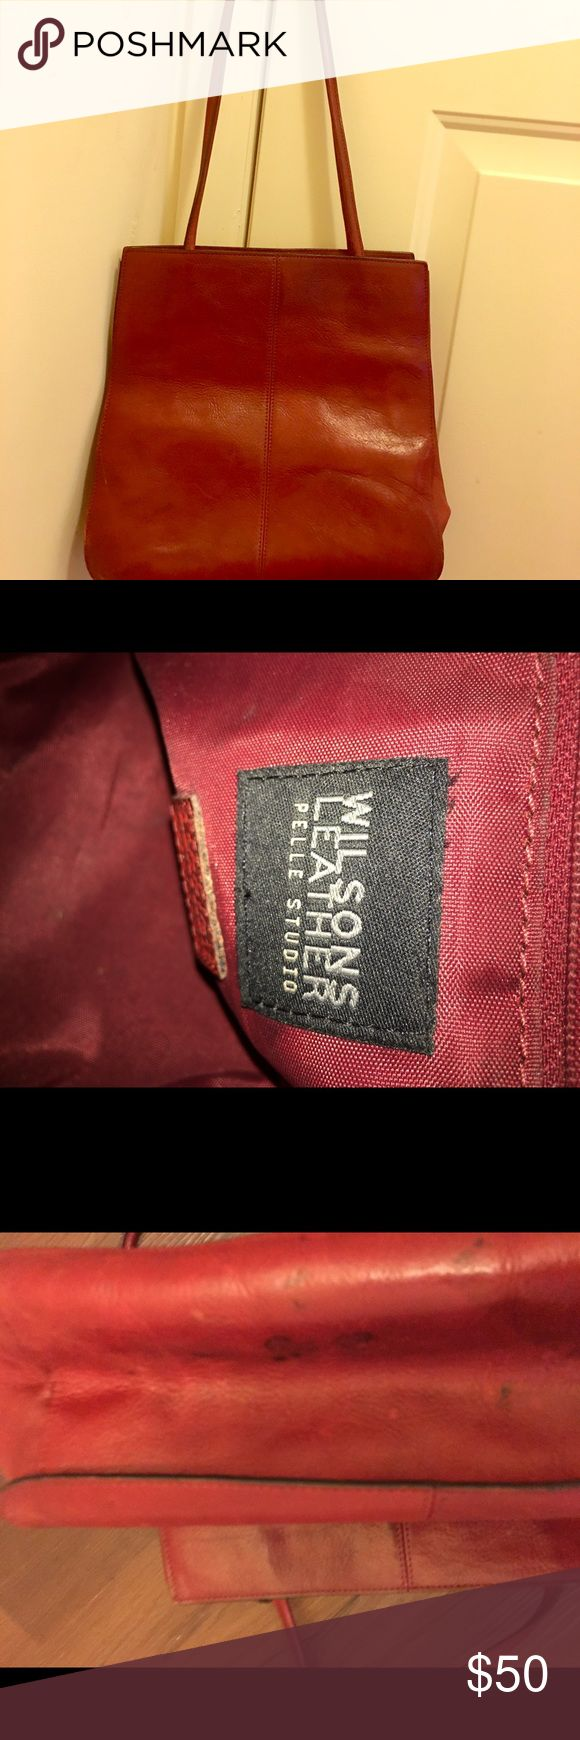 Wilson dark red/Burgundy leather Tote bag Previously owned, Dressy Tote bag can be used for Work or Casual Attire Wilsons Leather Bags Totes